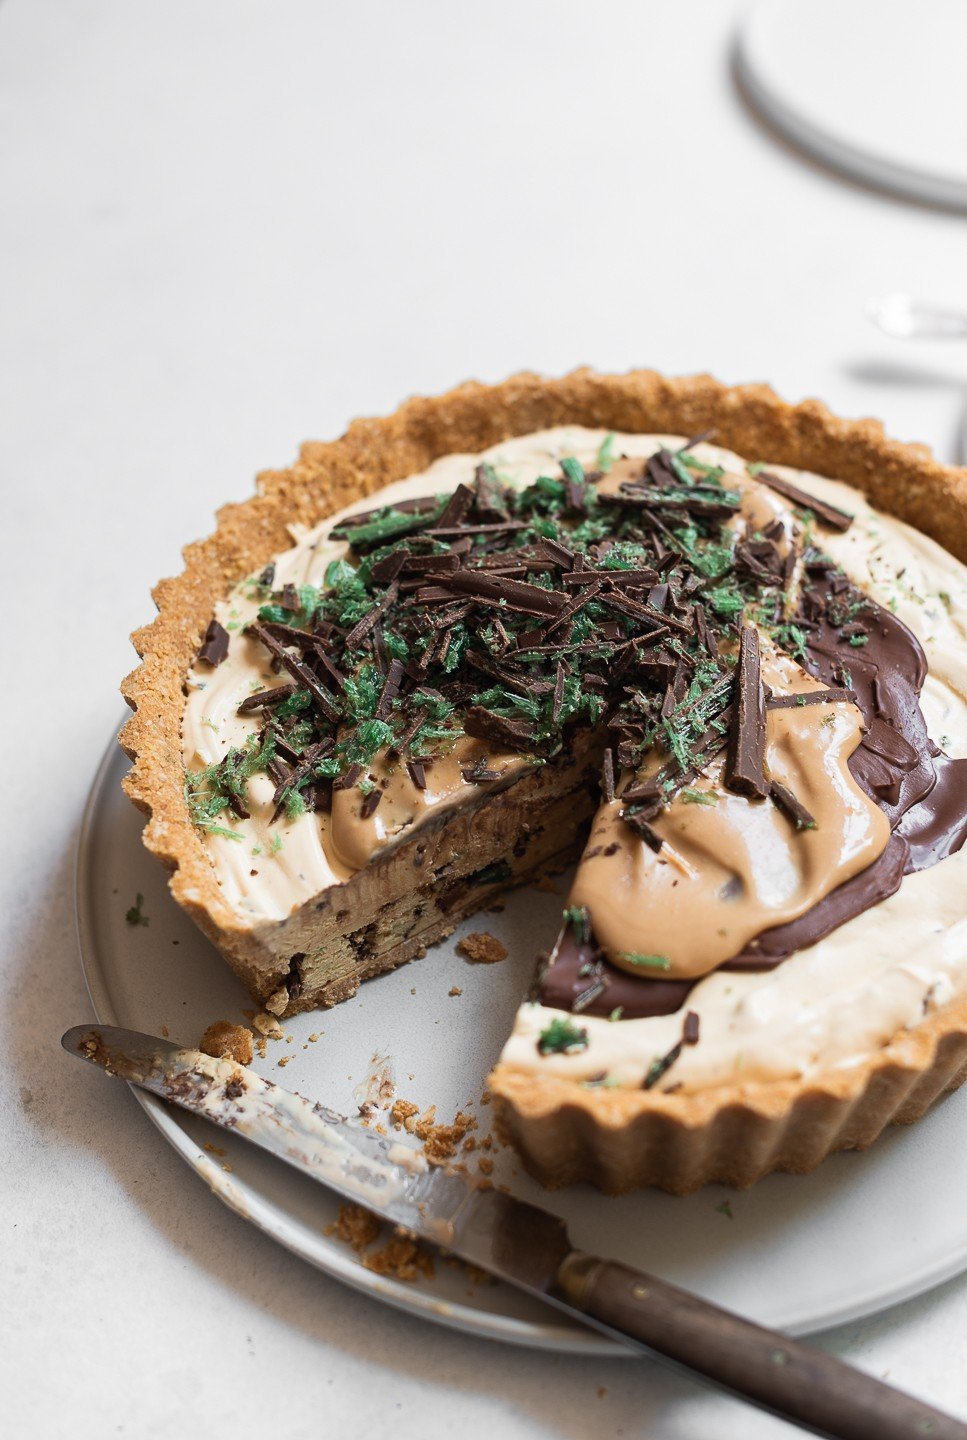 Frozen Peppermint crisp pudding pie